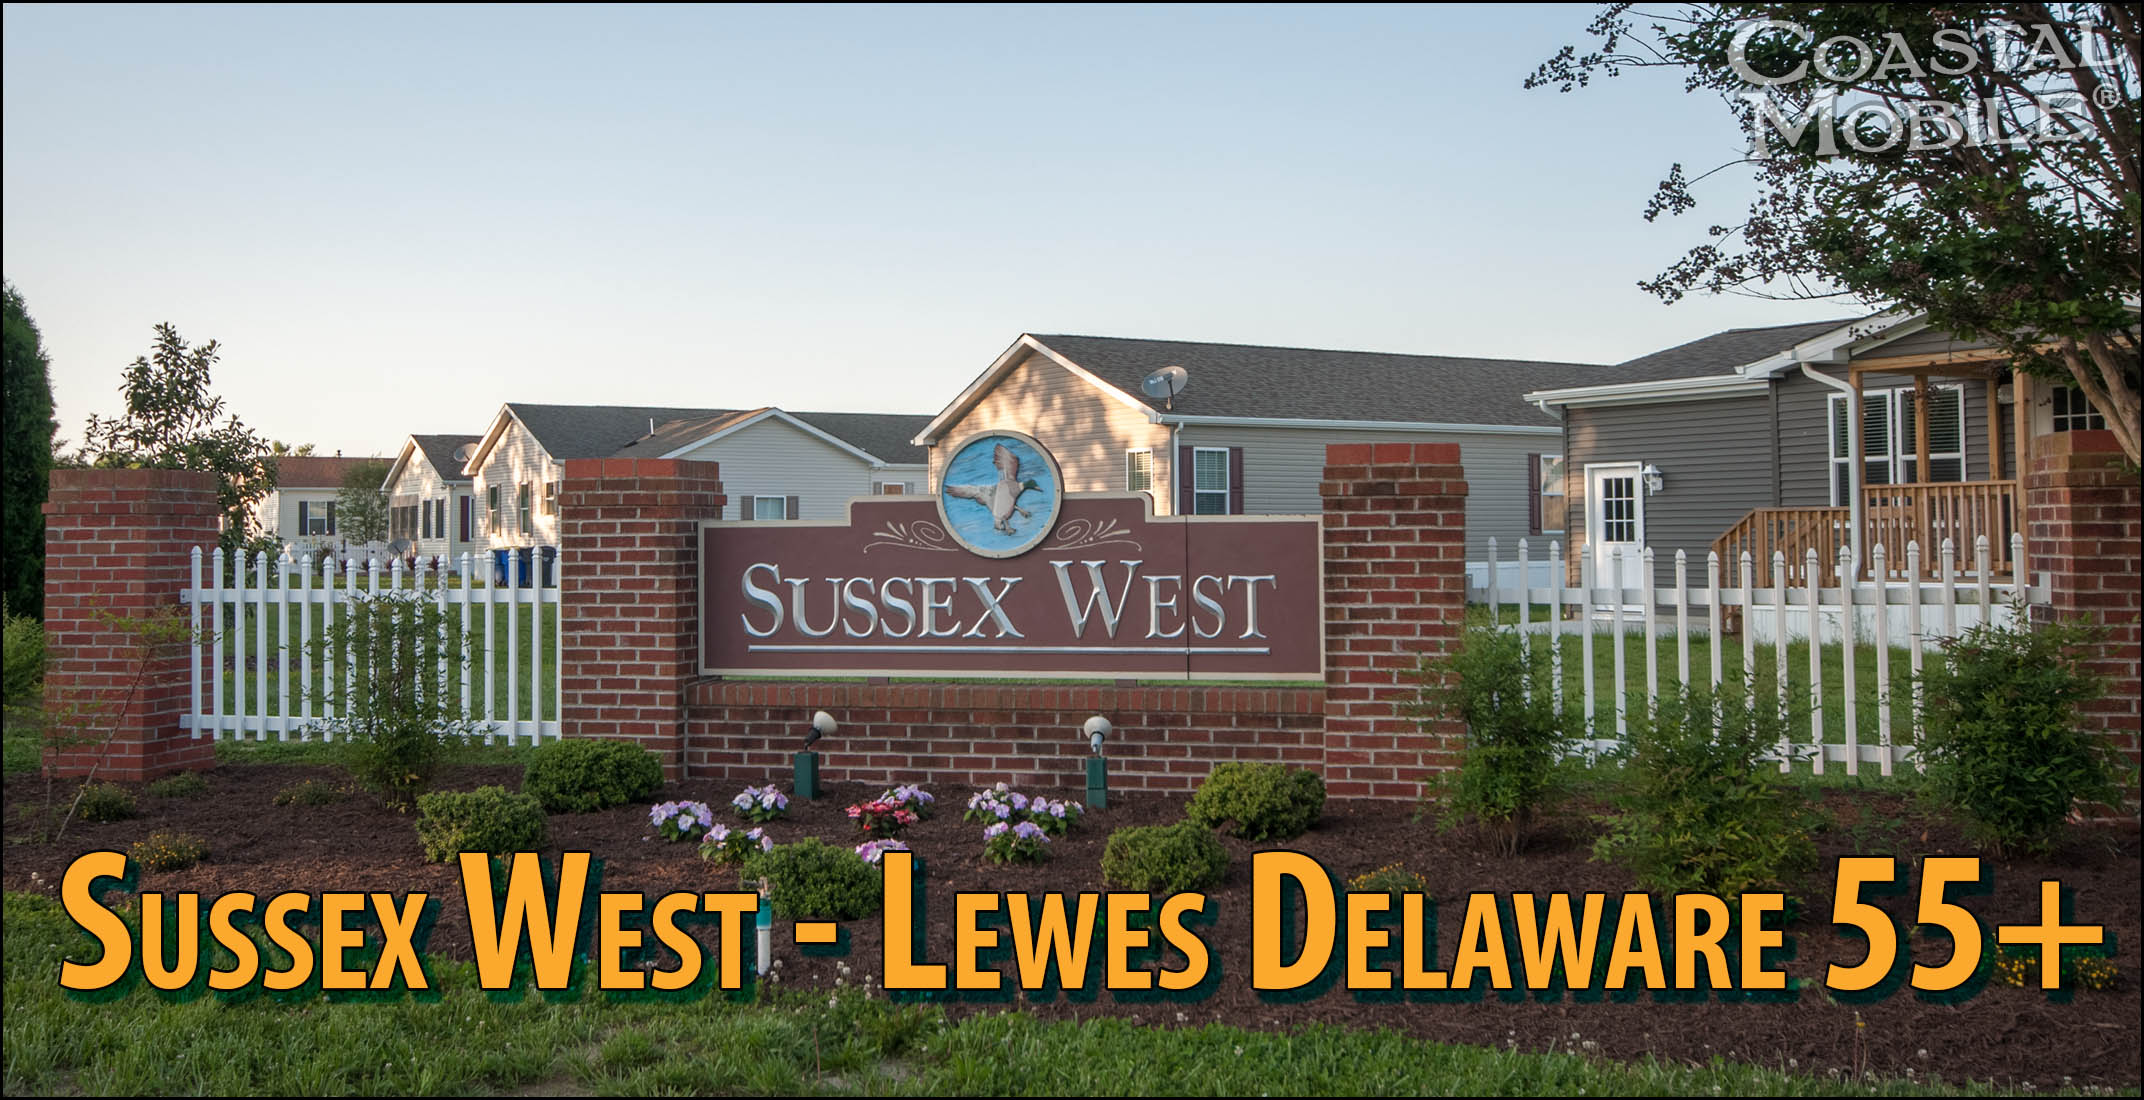 Sussex West Lewes Delaware